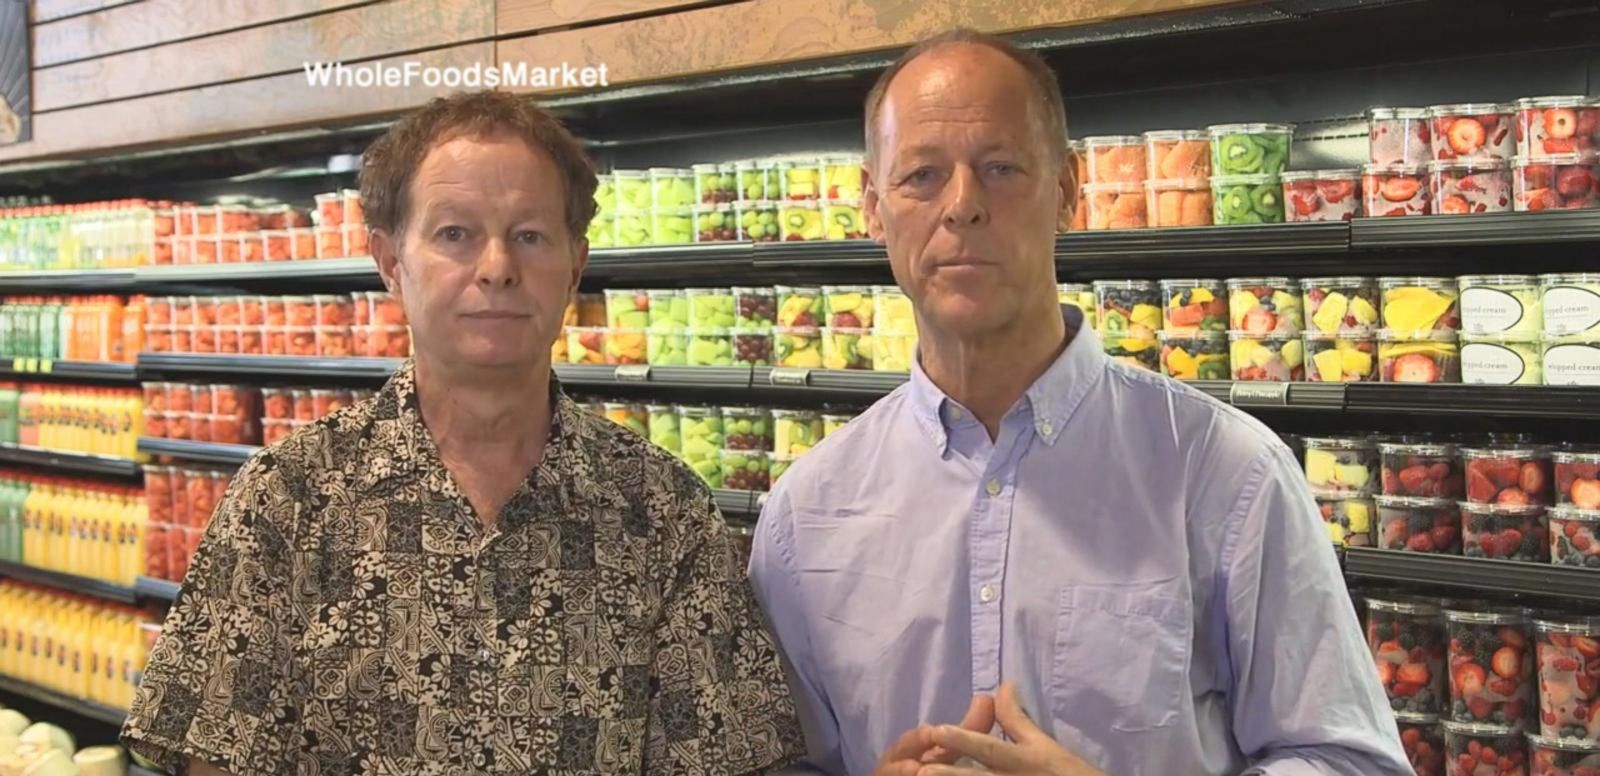 VIDEO: Whole Foods CEOs Apologize for Overcharging Customers